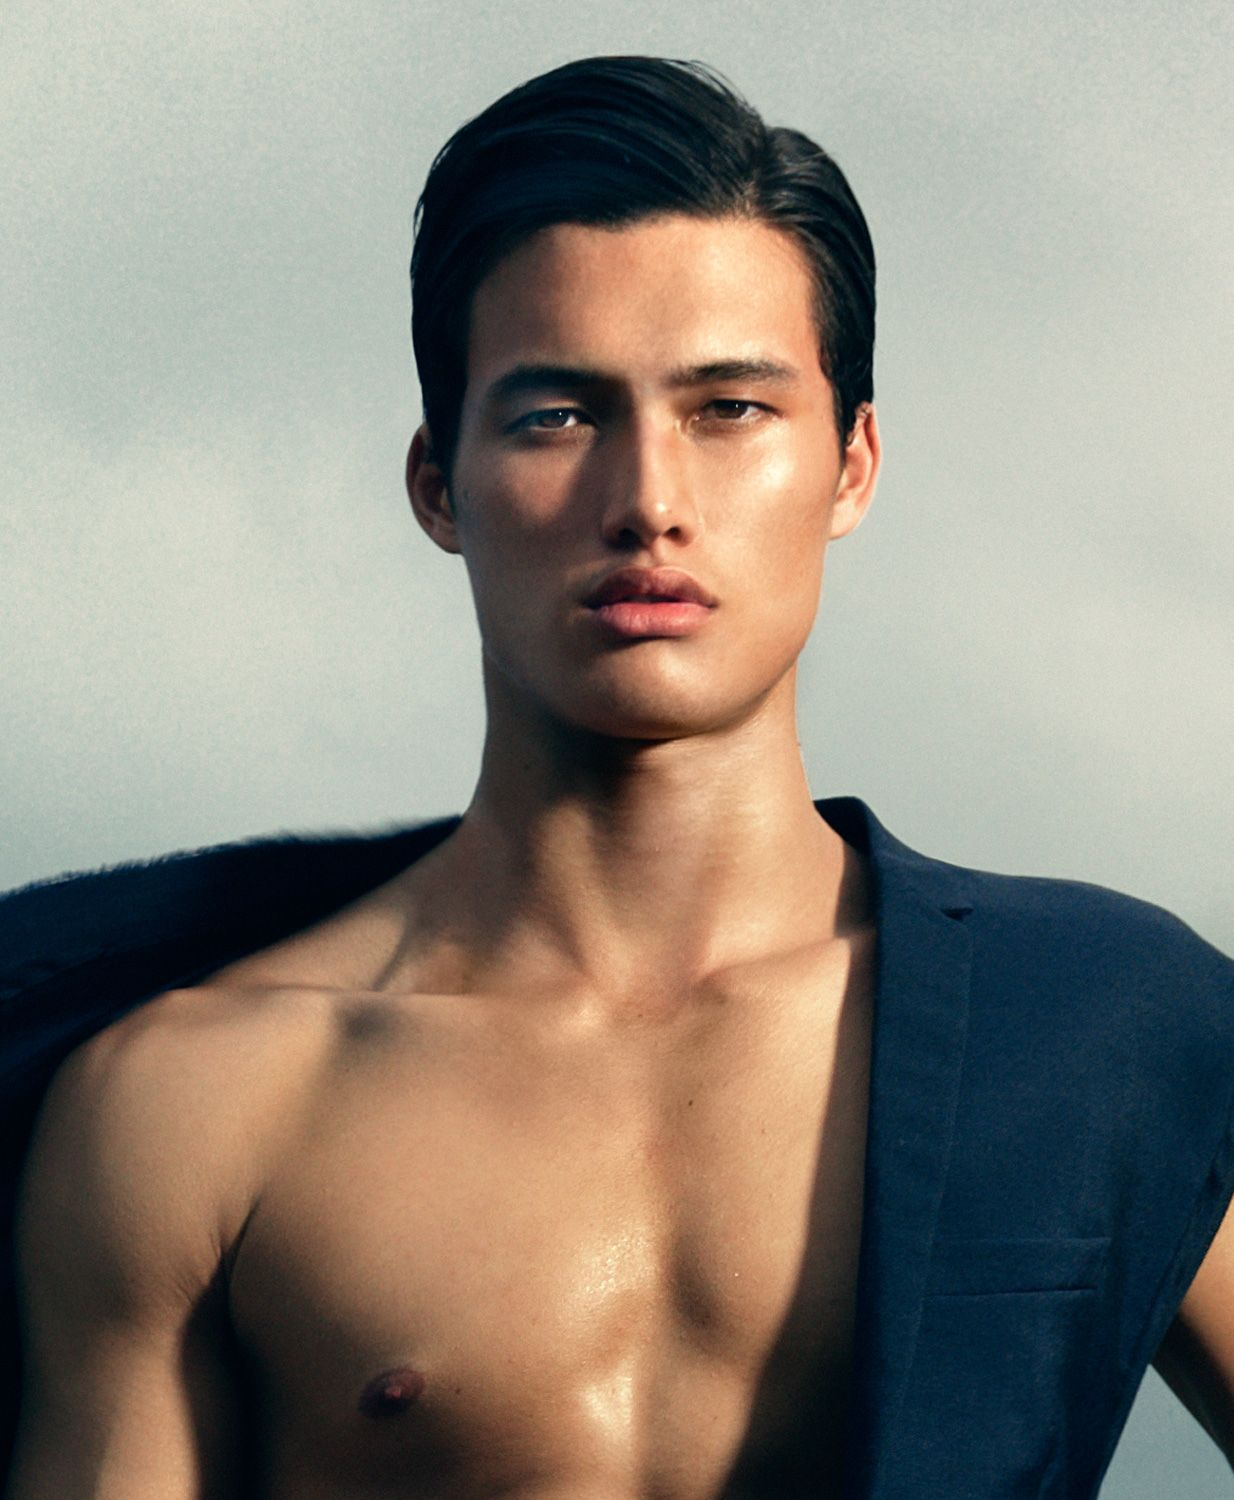 Half Korean Half White And Cherokee Charles Melton Simply Known As Melton From His Football Benchwarming Days Male Model Face Asian Male Model Guy Pictures